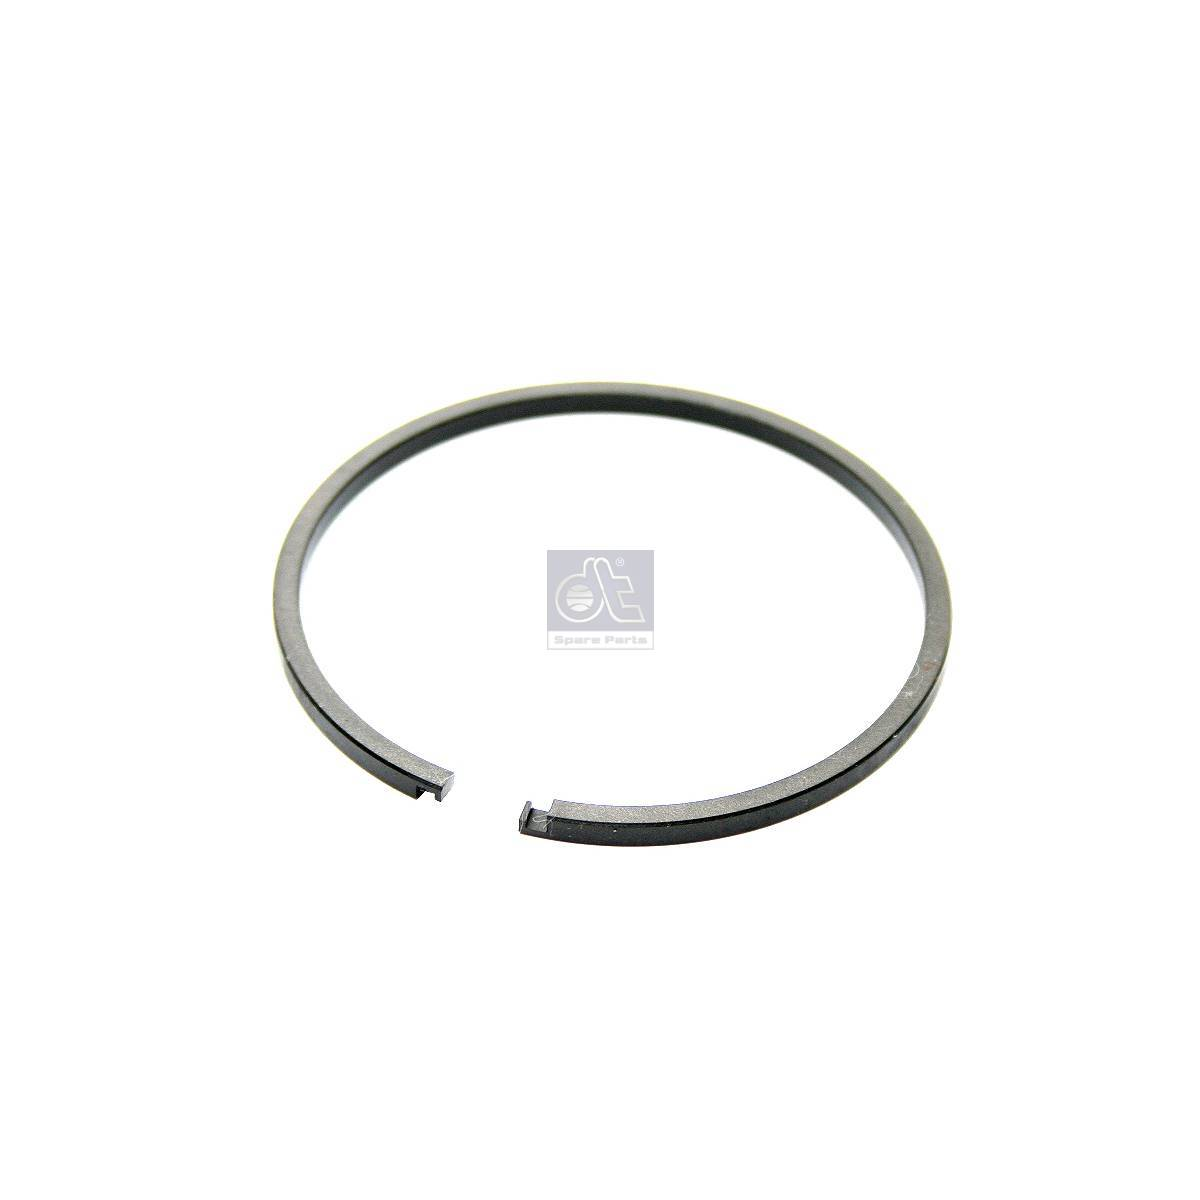 Piston ring, input shaft